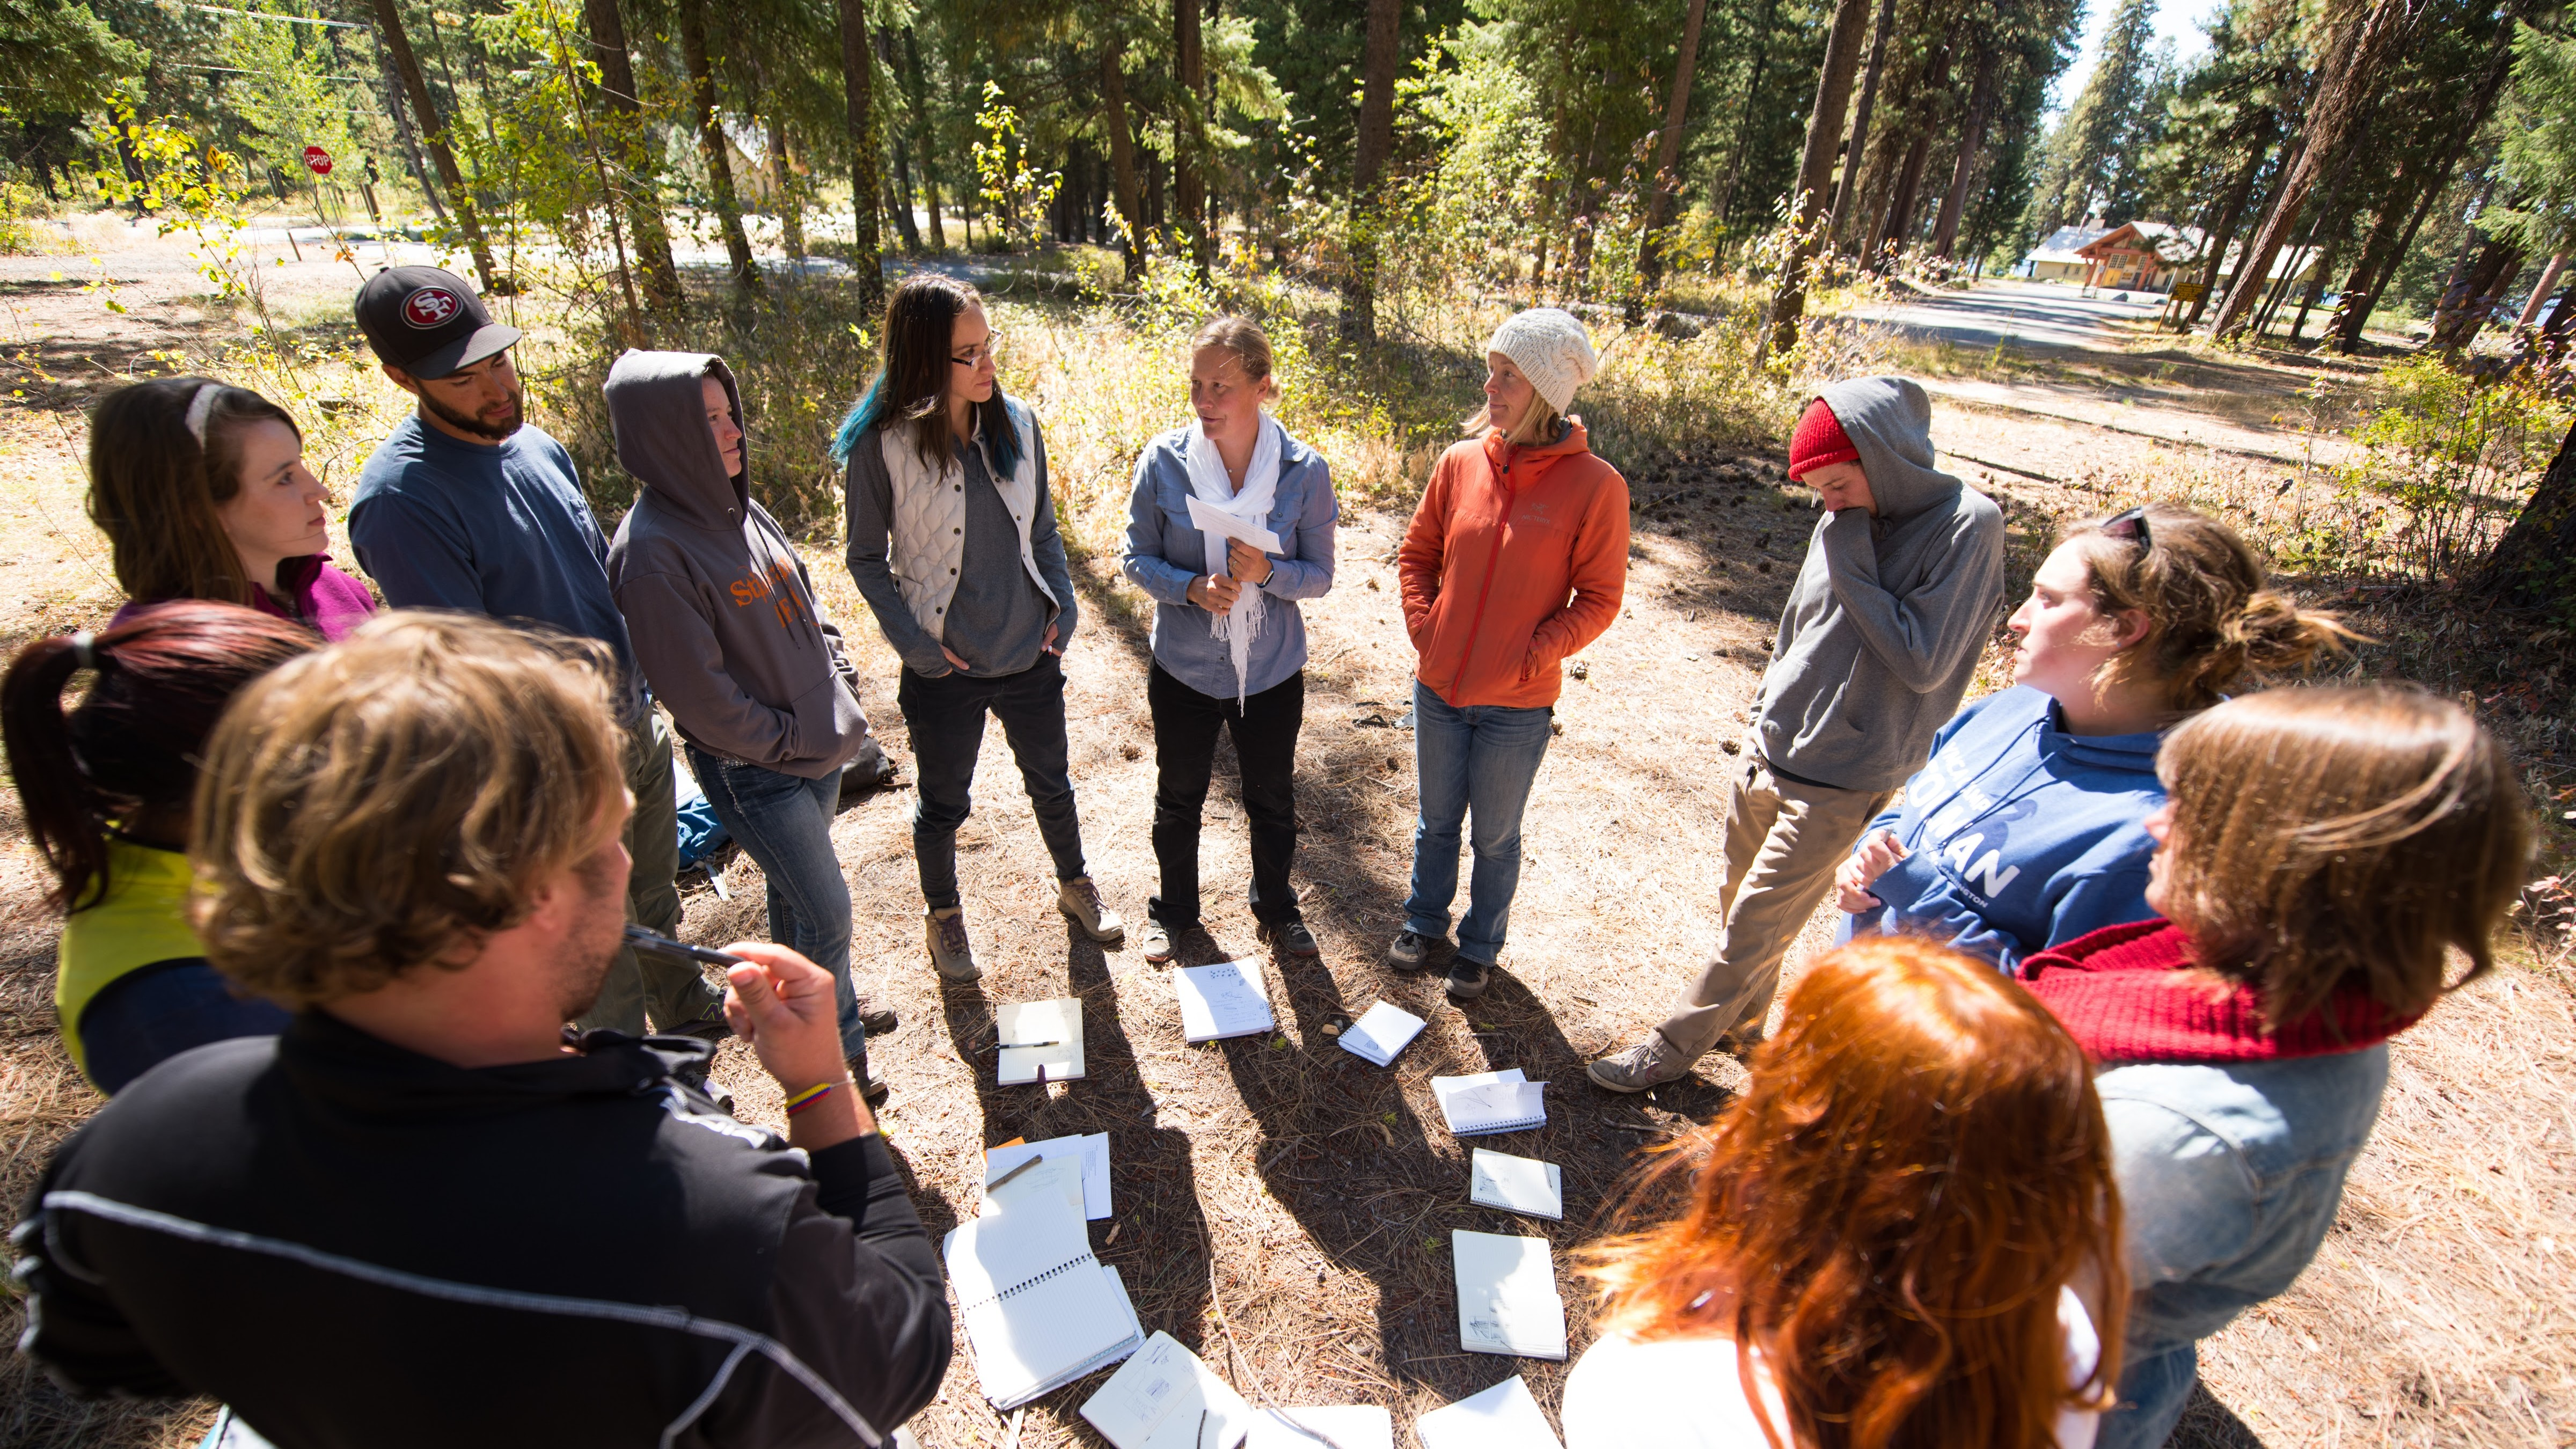 Graduate Student and Dr. Karla Eitel enjoy class in Ponderosa State Park